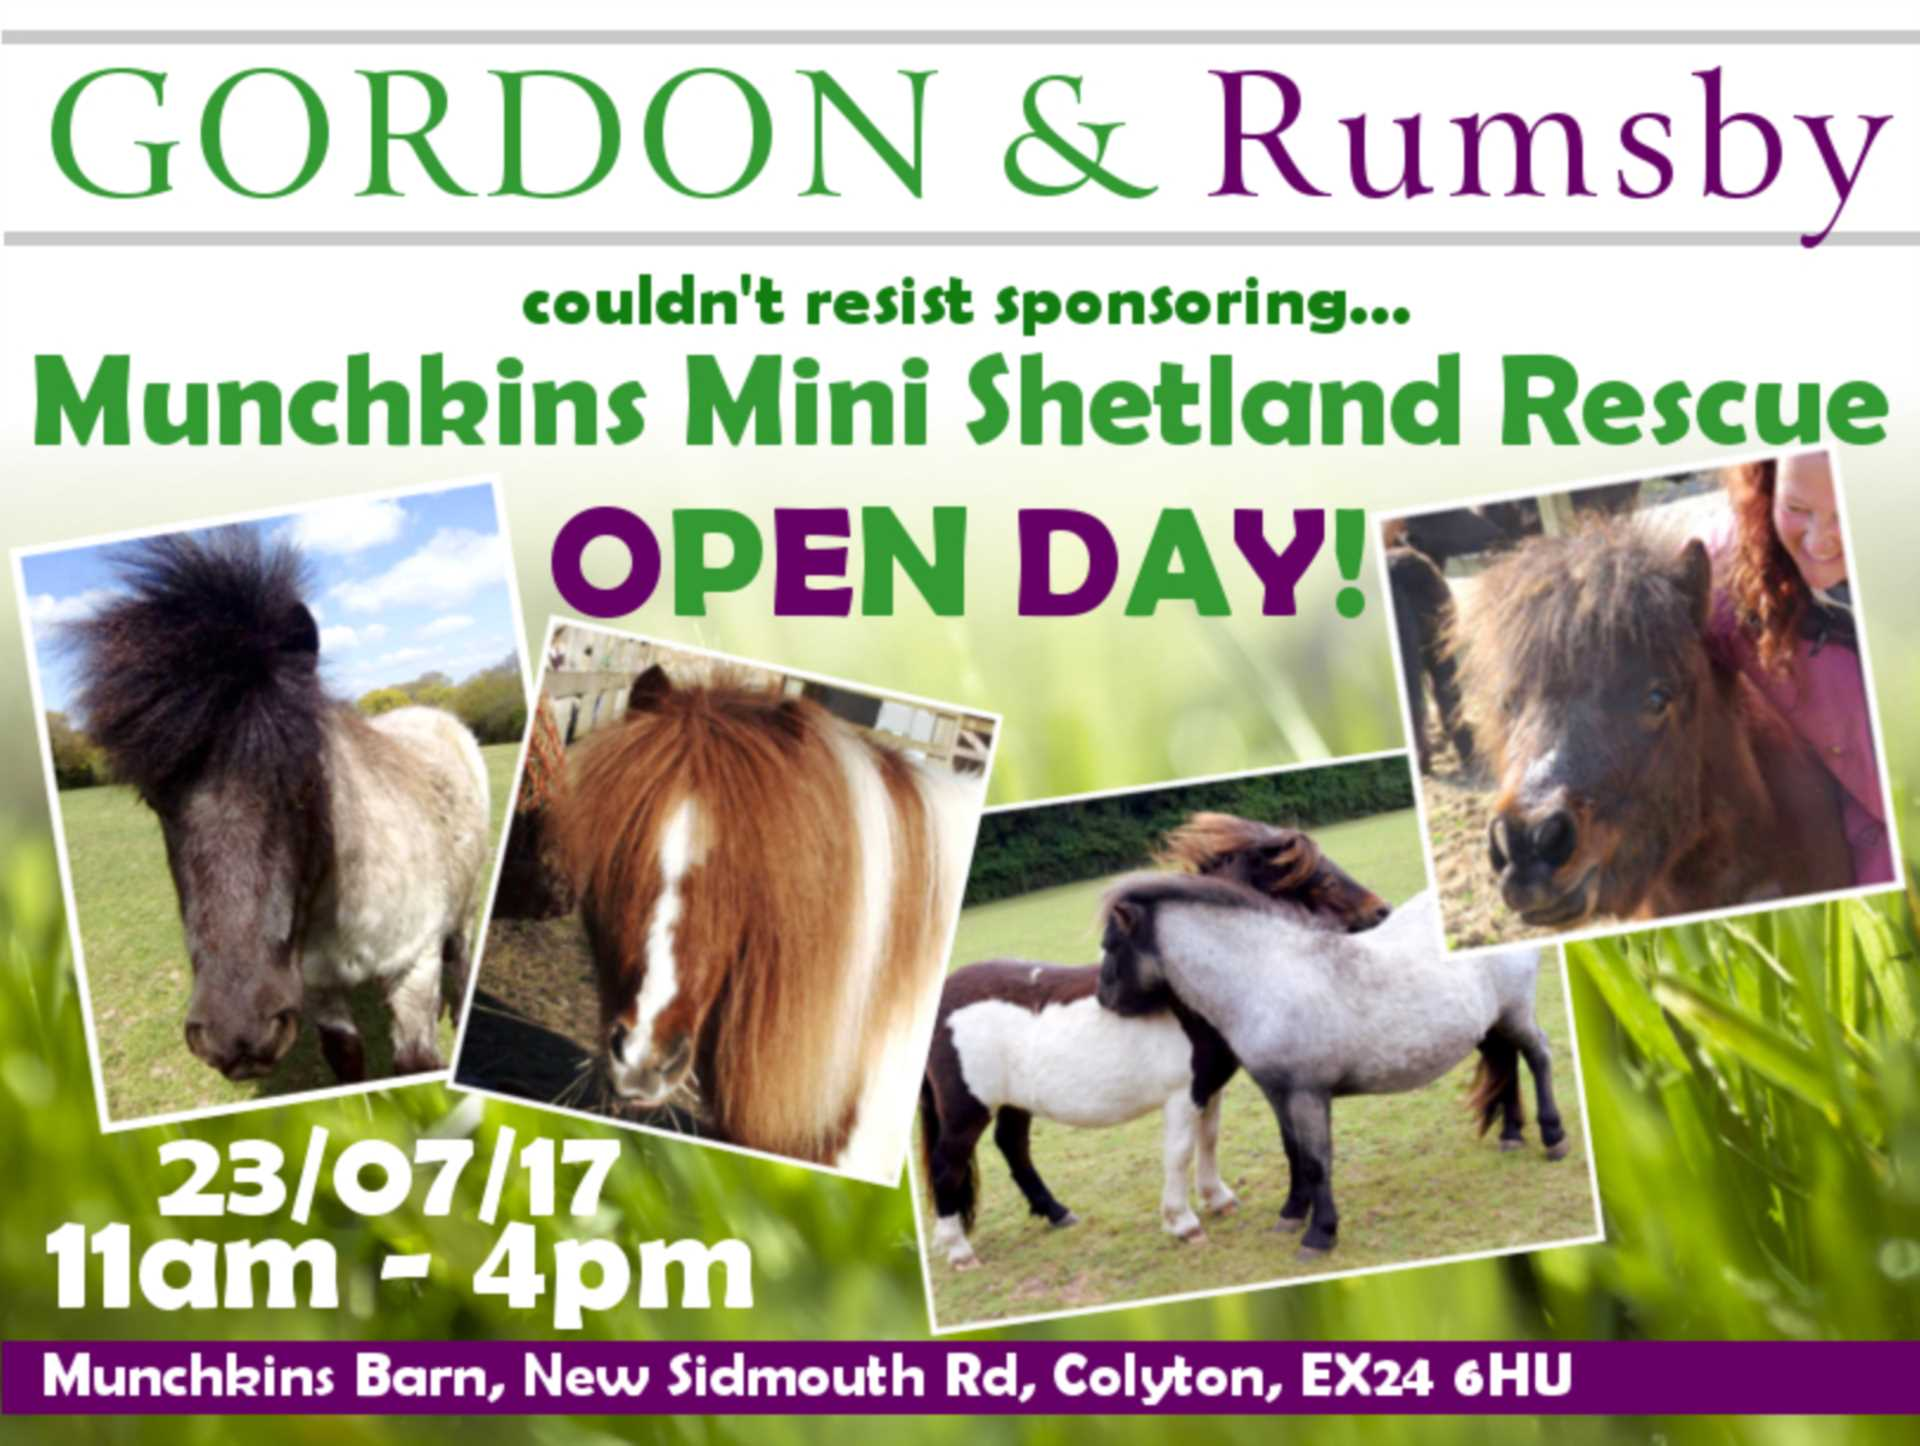 Munchkins Mini Shetland Rescue Open Day!